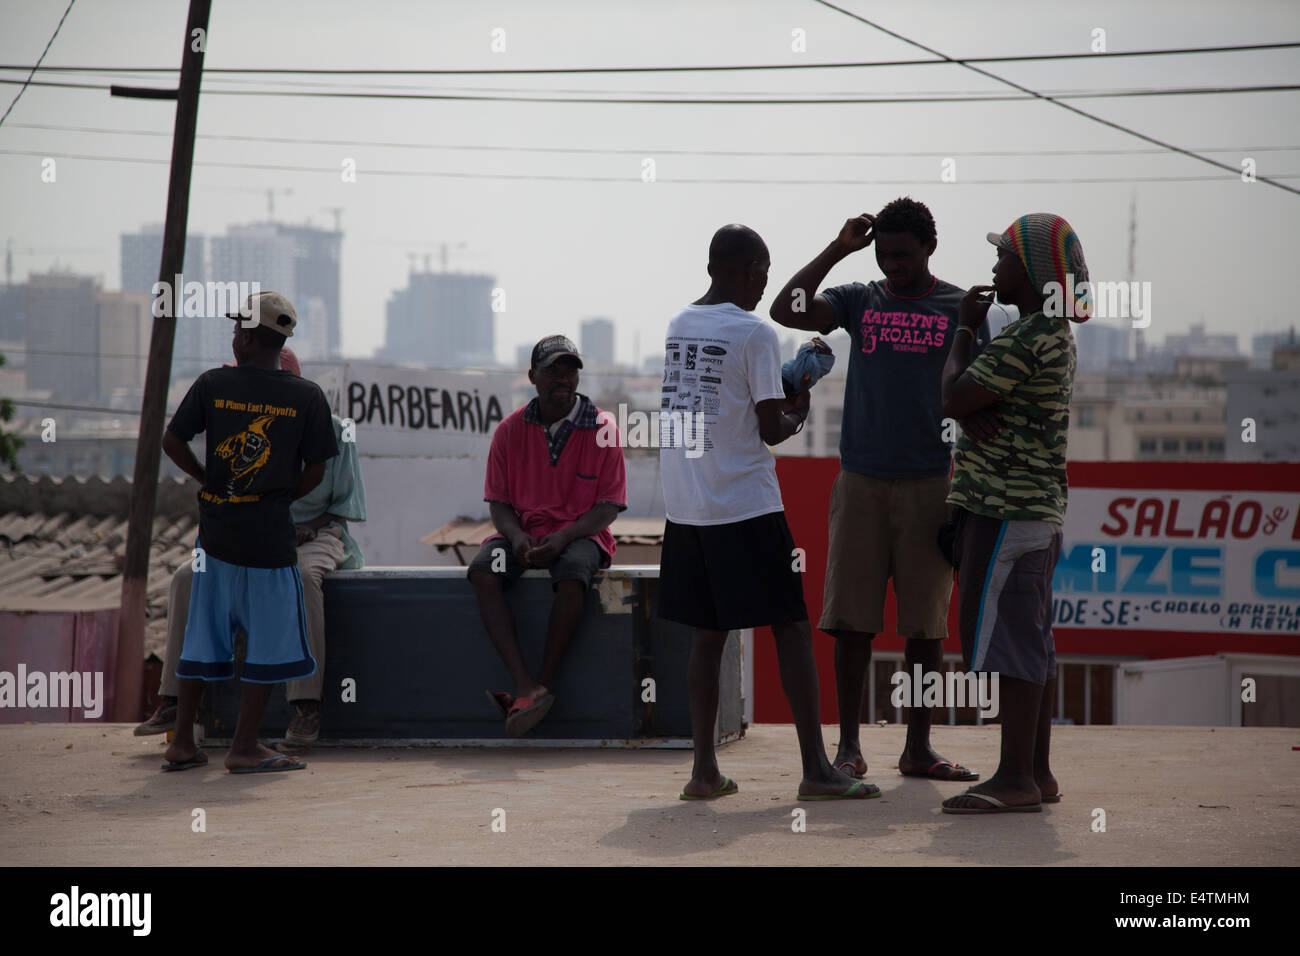 Angola, Luanda, city life Africa daily life pedestrians with city in background Stock Photo